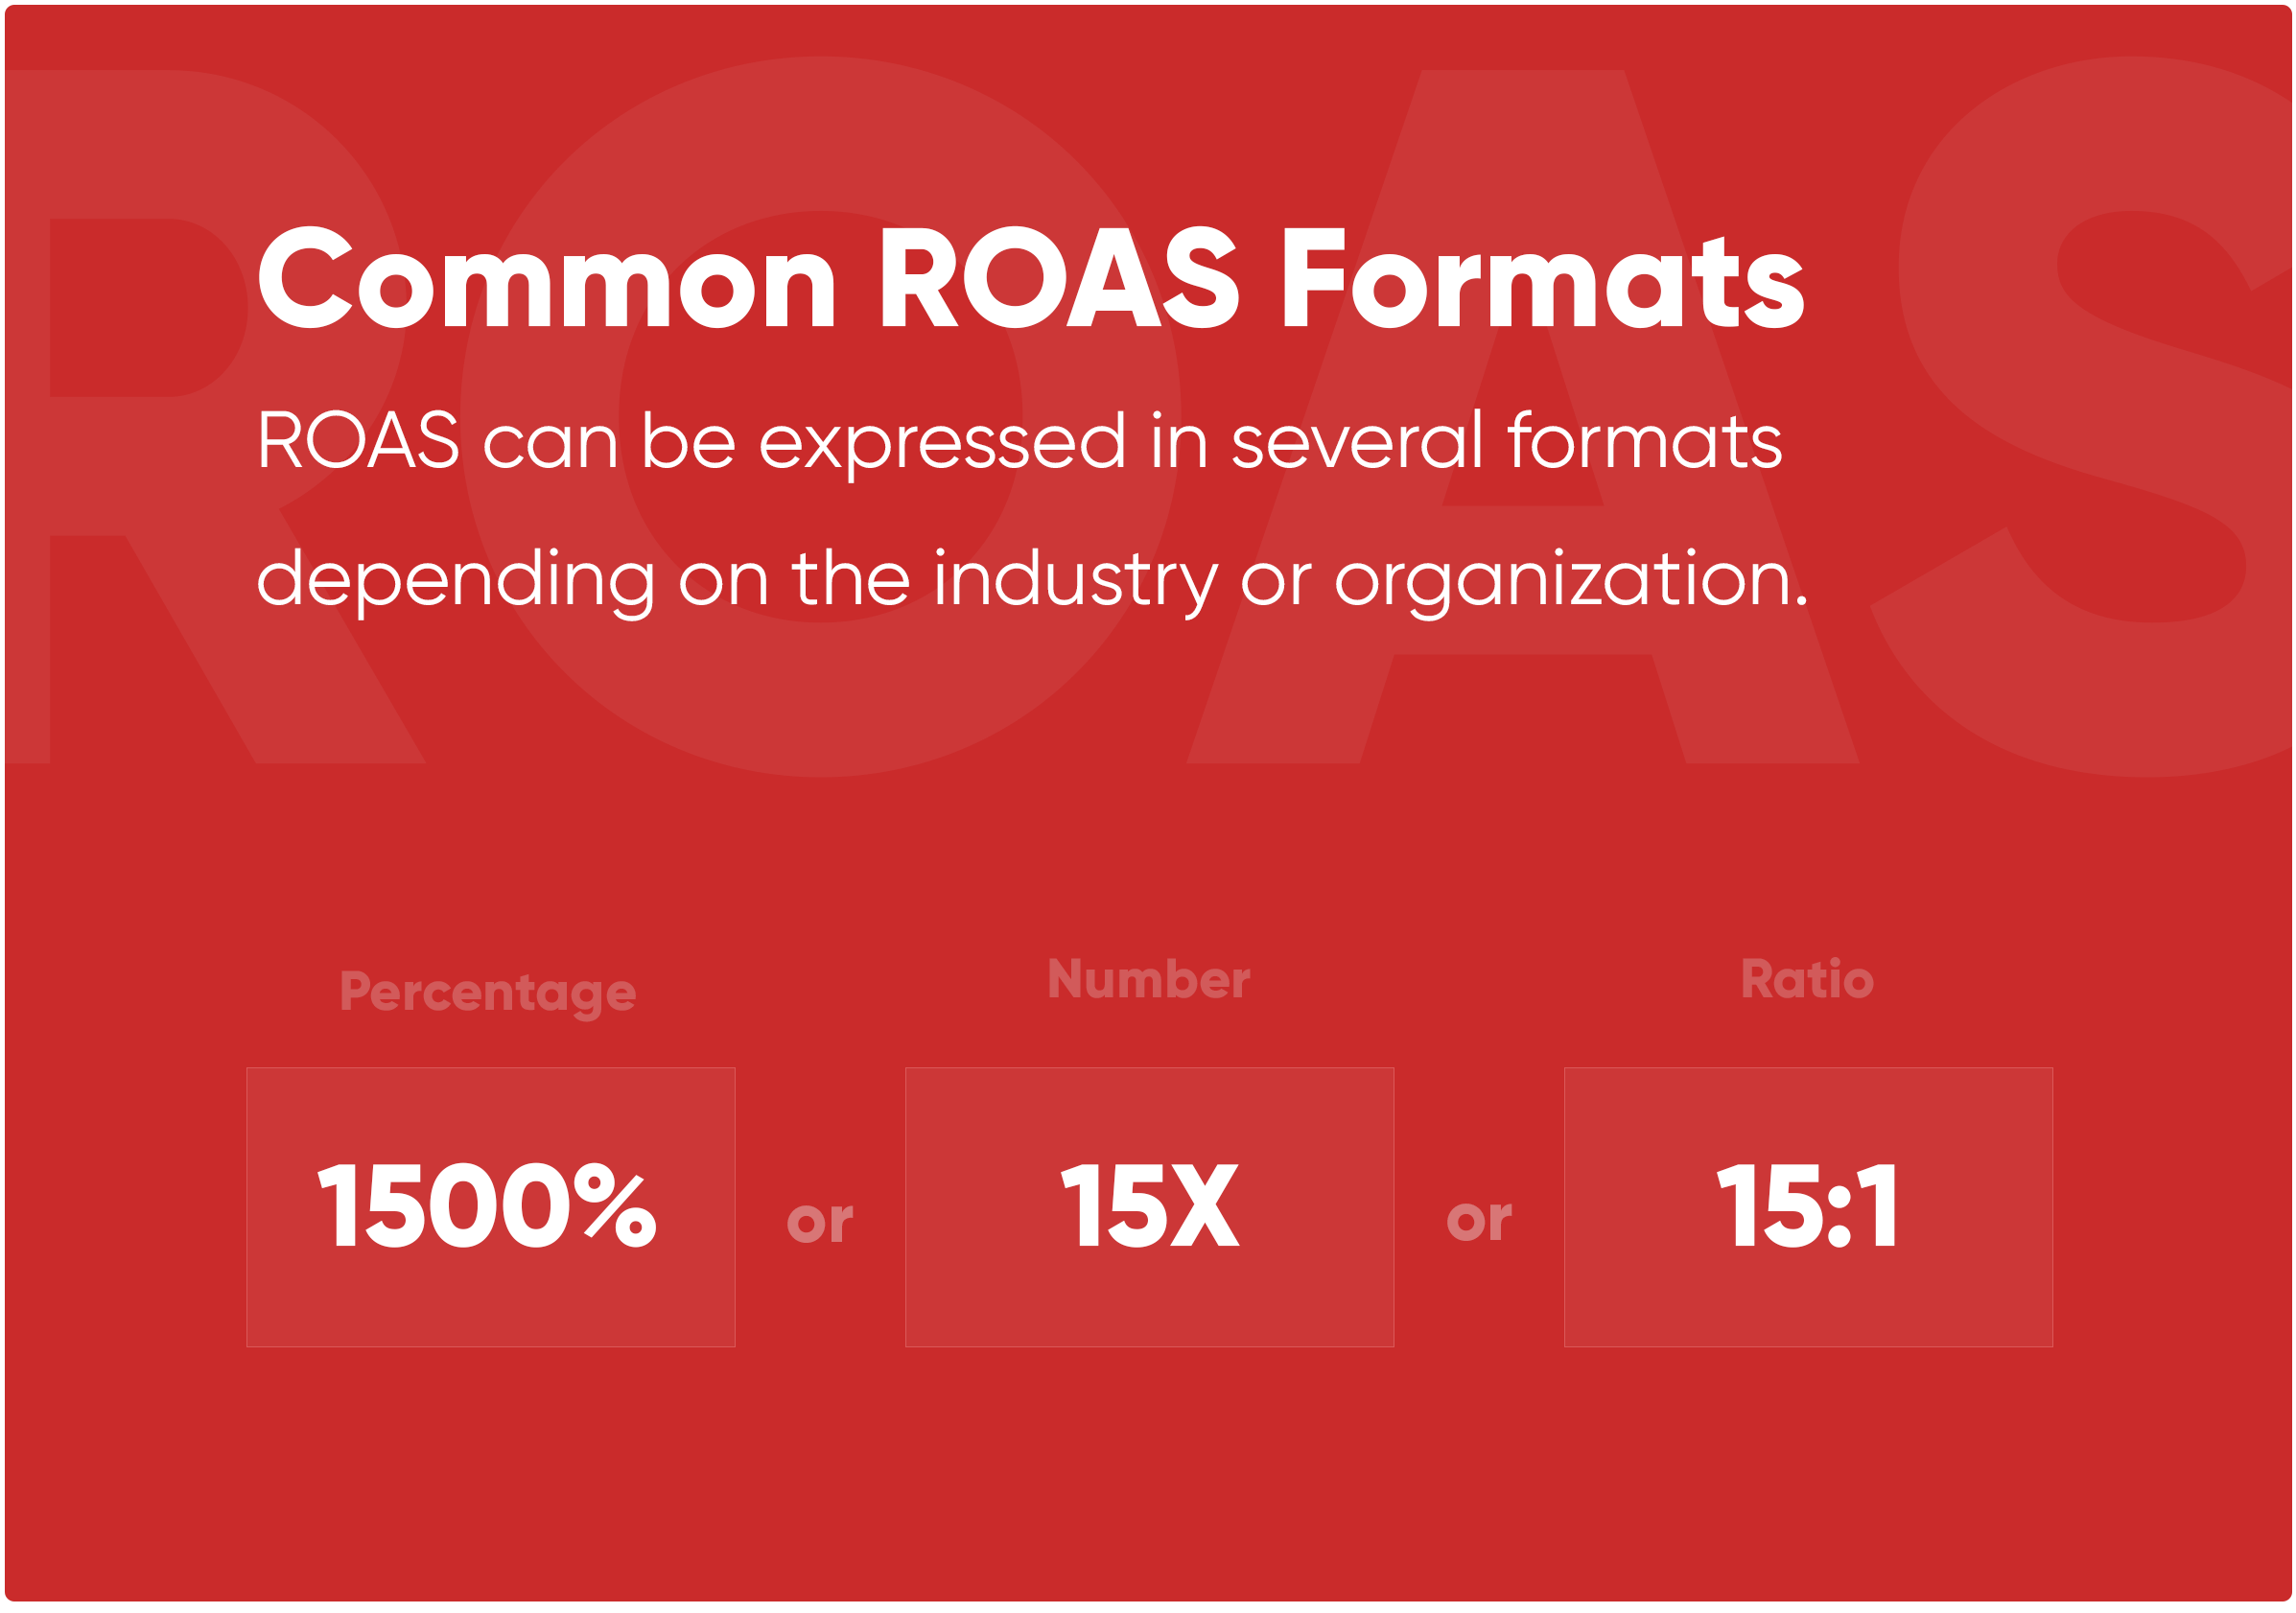 Common ROAS Formats